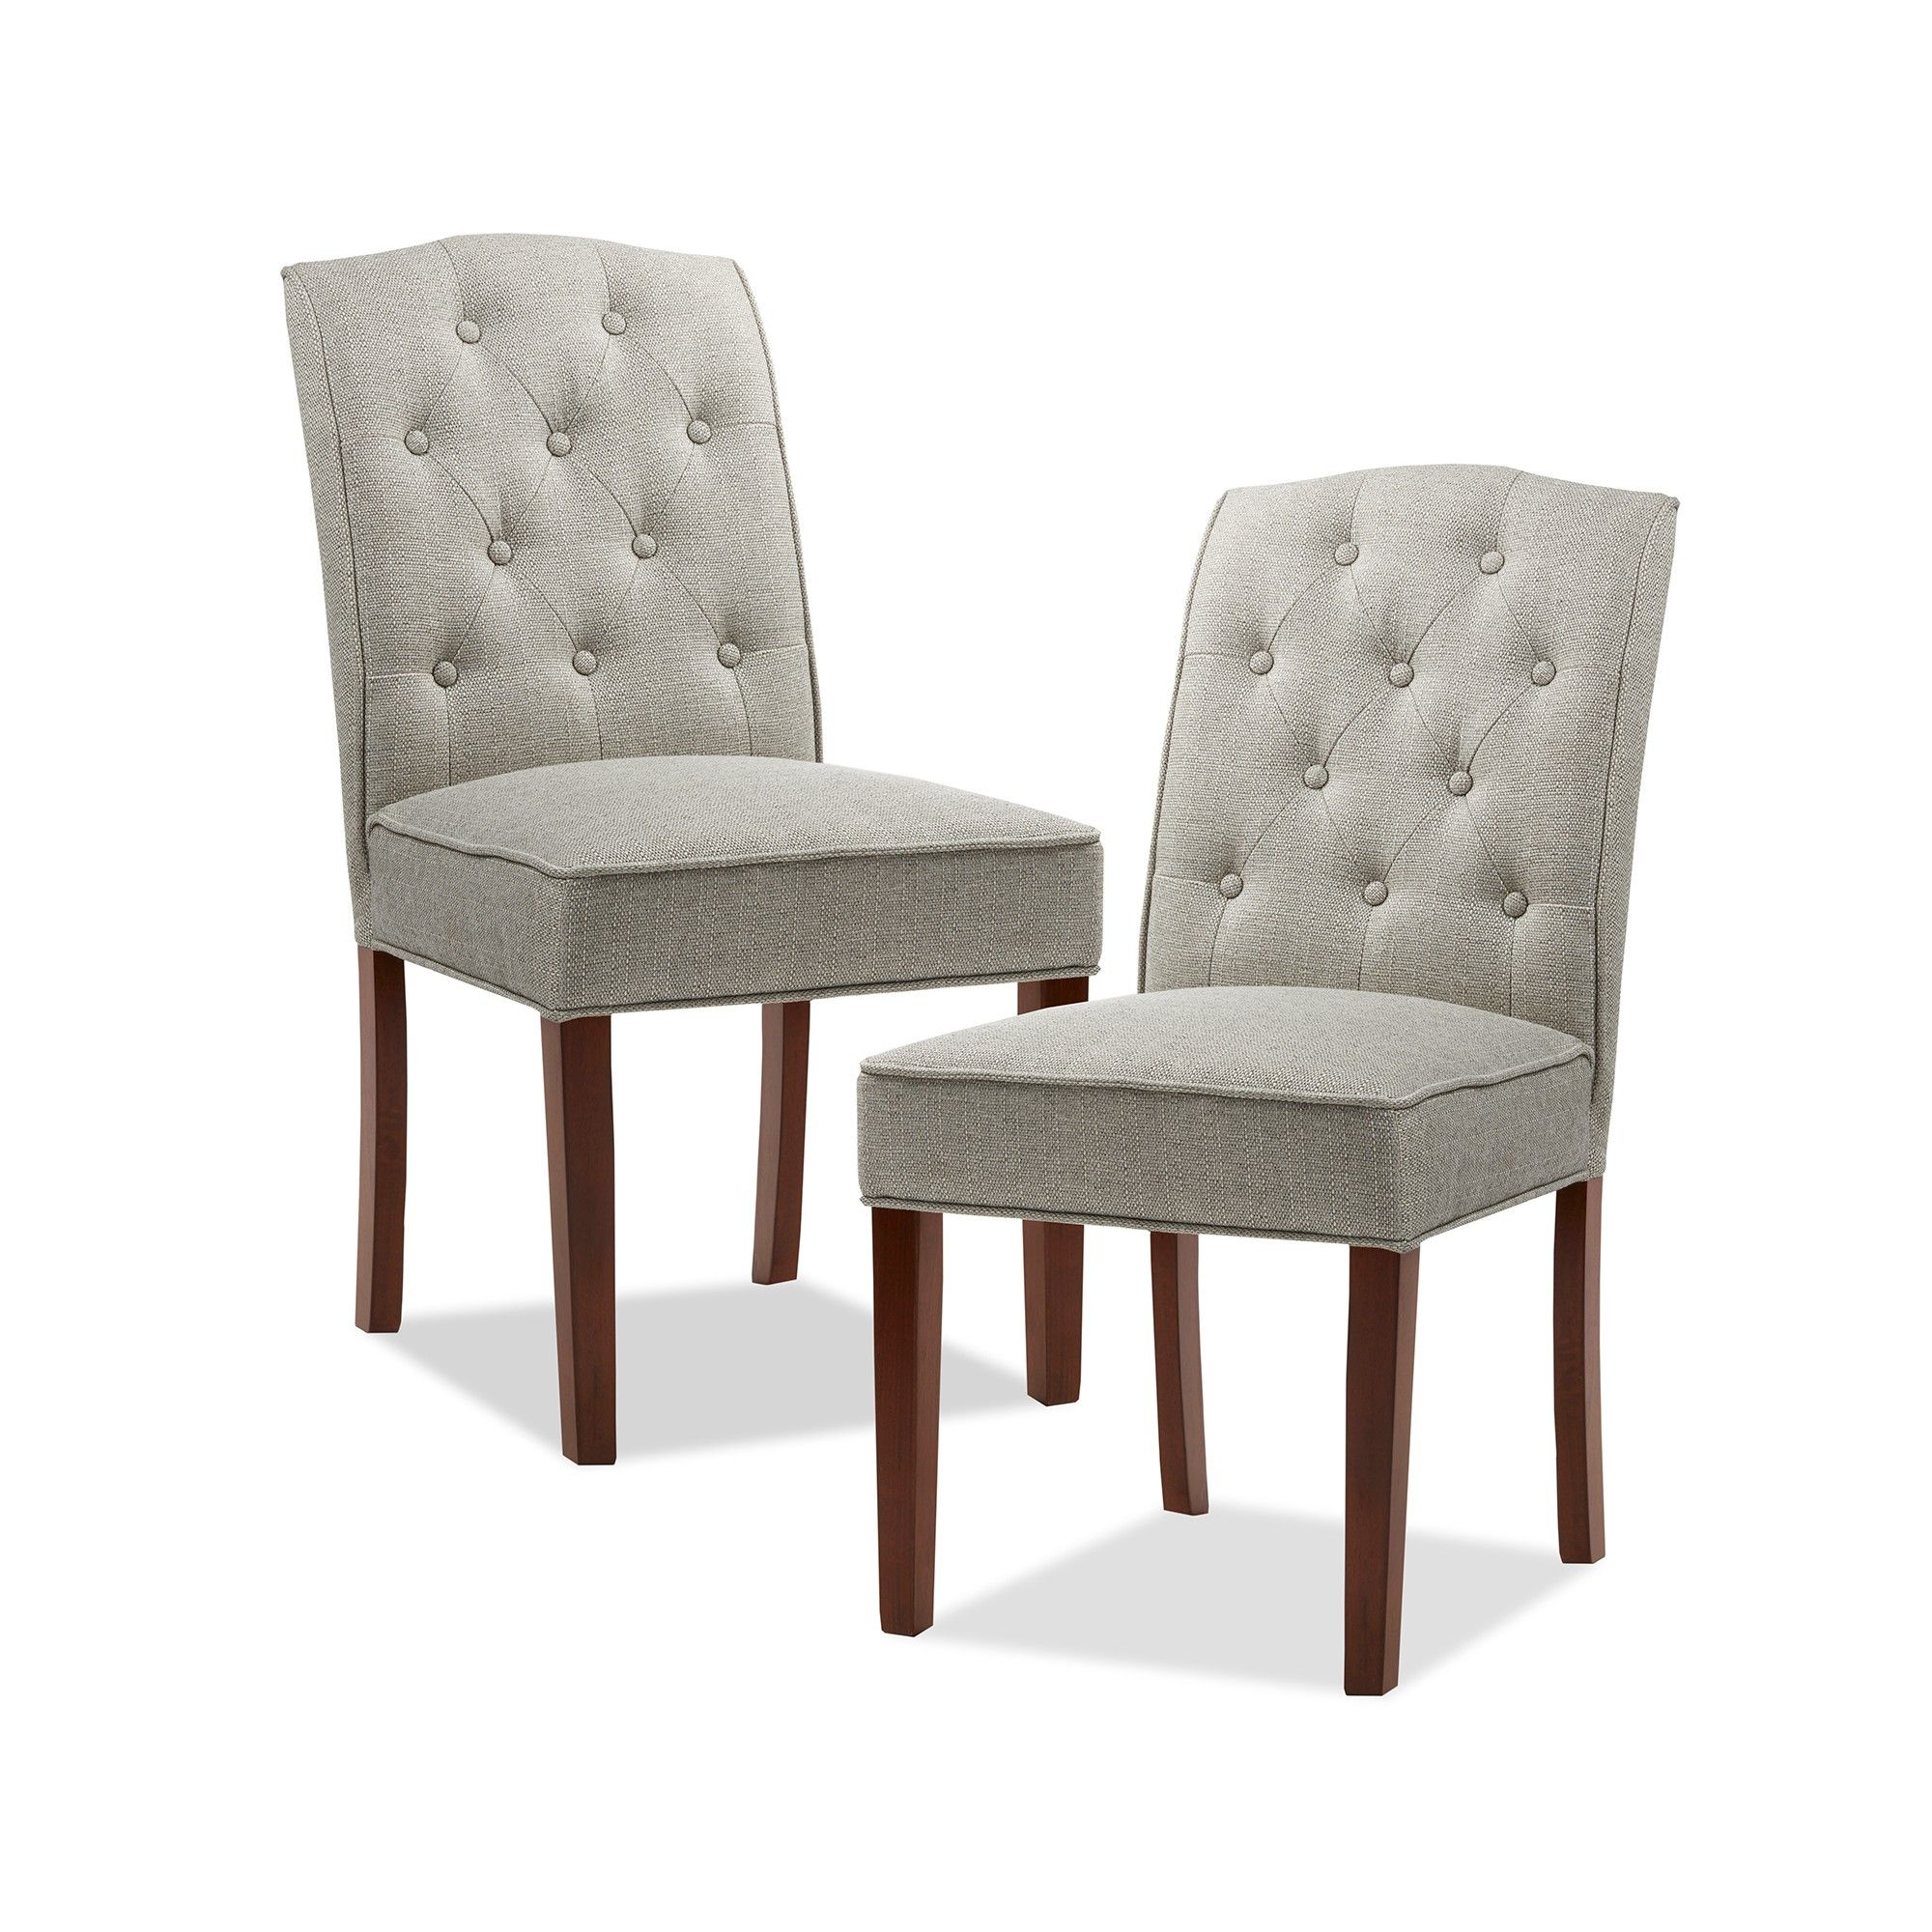 Set Of 2 Khloe Tufted Dining Chair Cream Gray Ivory Gray